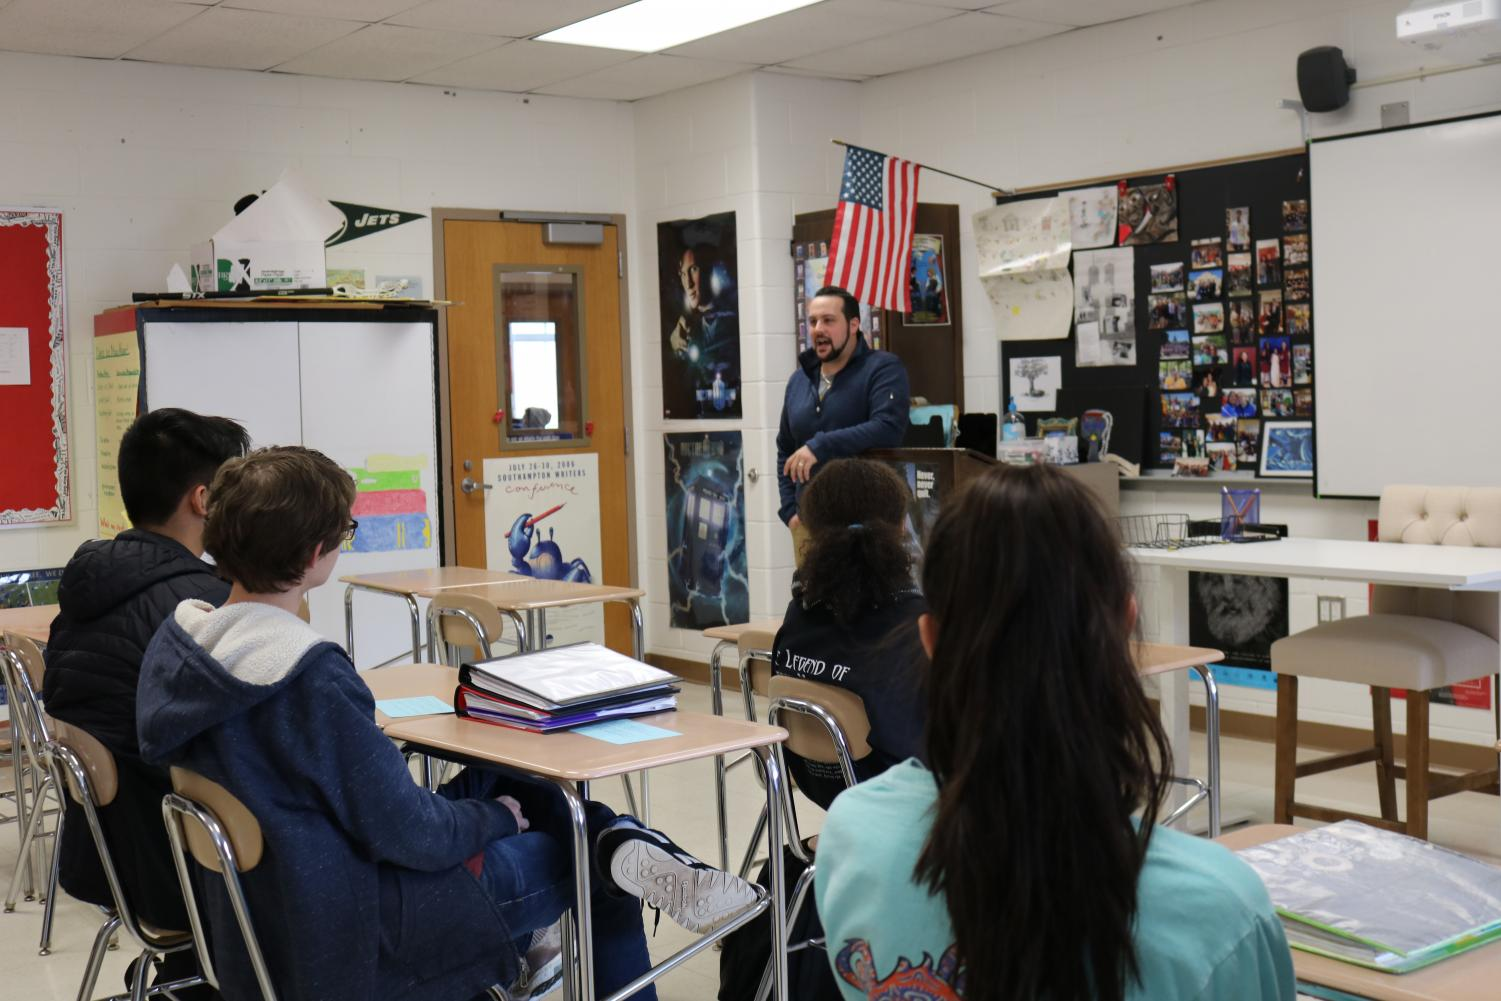 Chris Vacarro came to Mrs. Sullivan's journalism class last week to share his experiences and insights into the world of modern journalism.